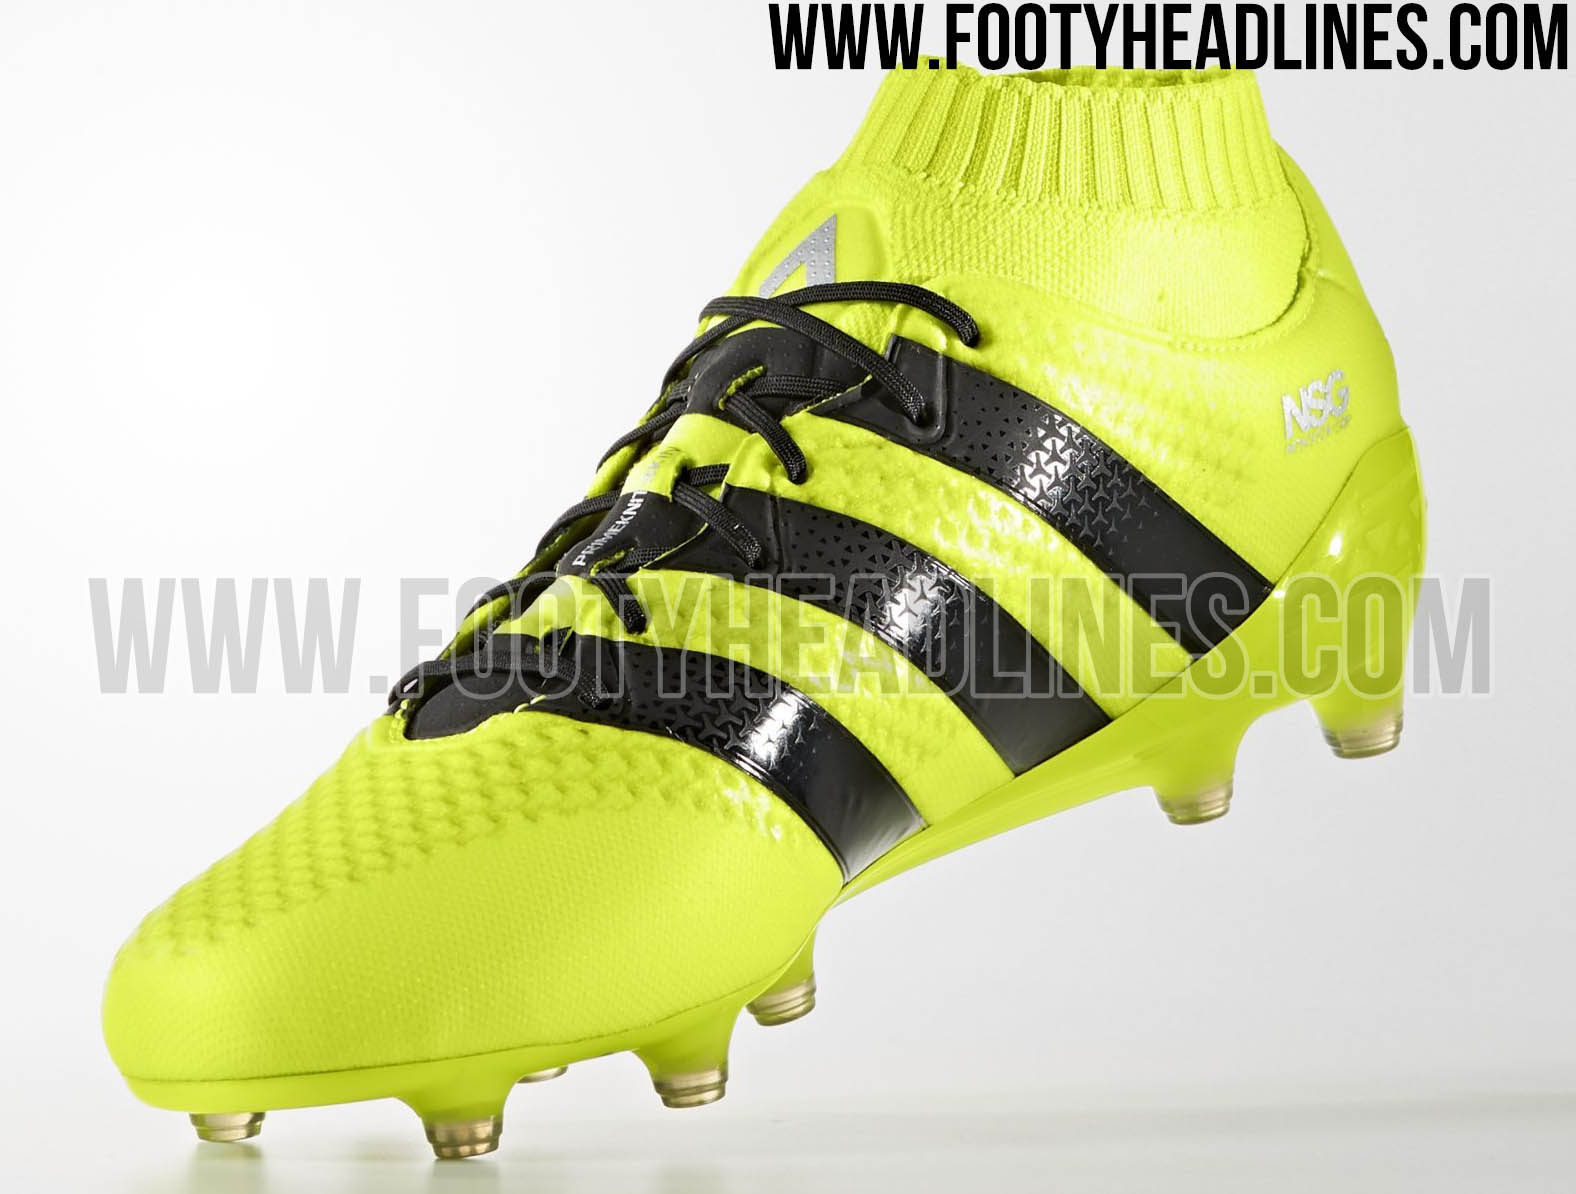 adidas ace solar yellow